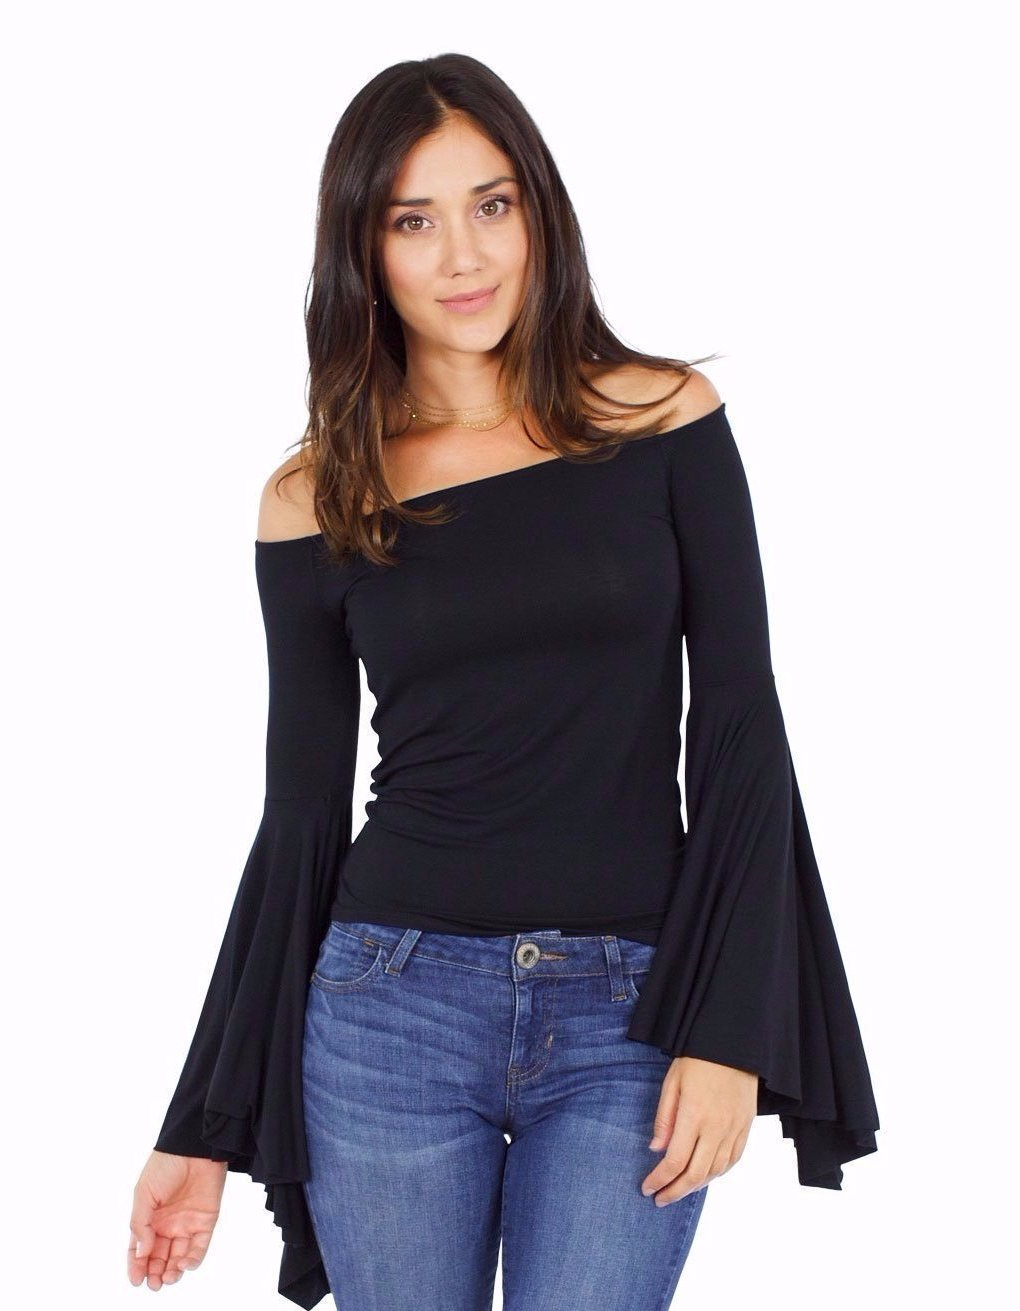 Women wearing a top rental from Free People called Birds Of Paradise Top